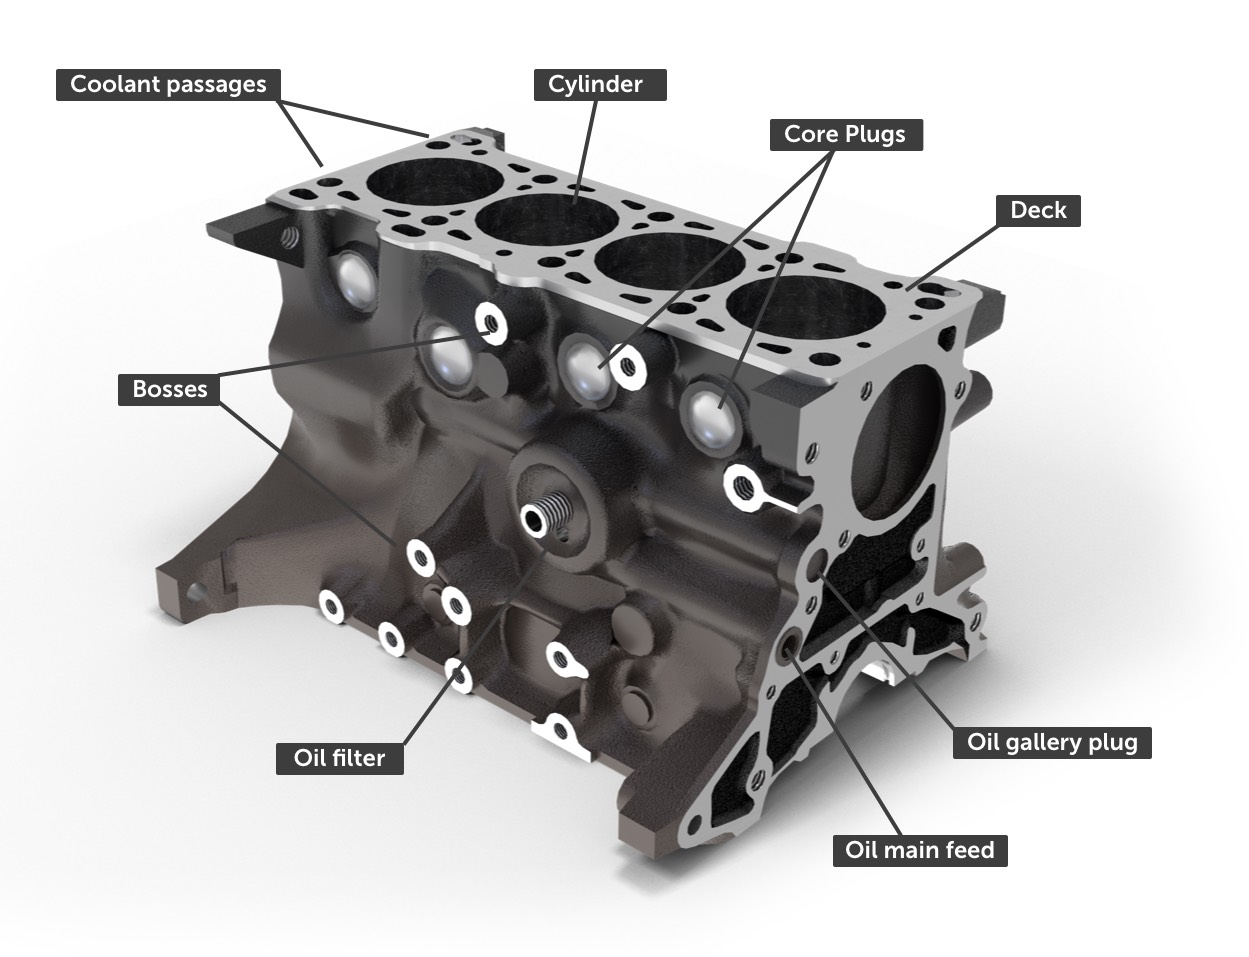 Production manufacturing knots and details of automobile diesel engines spare parts